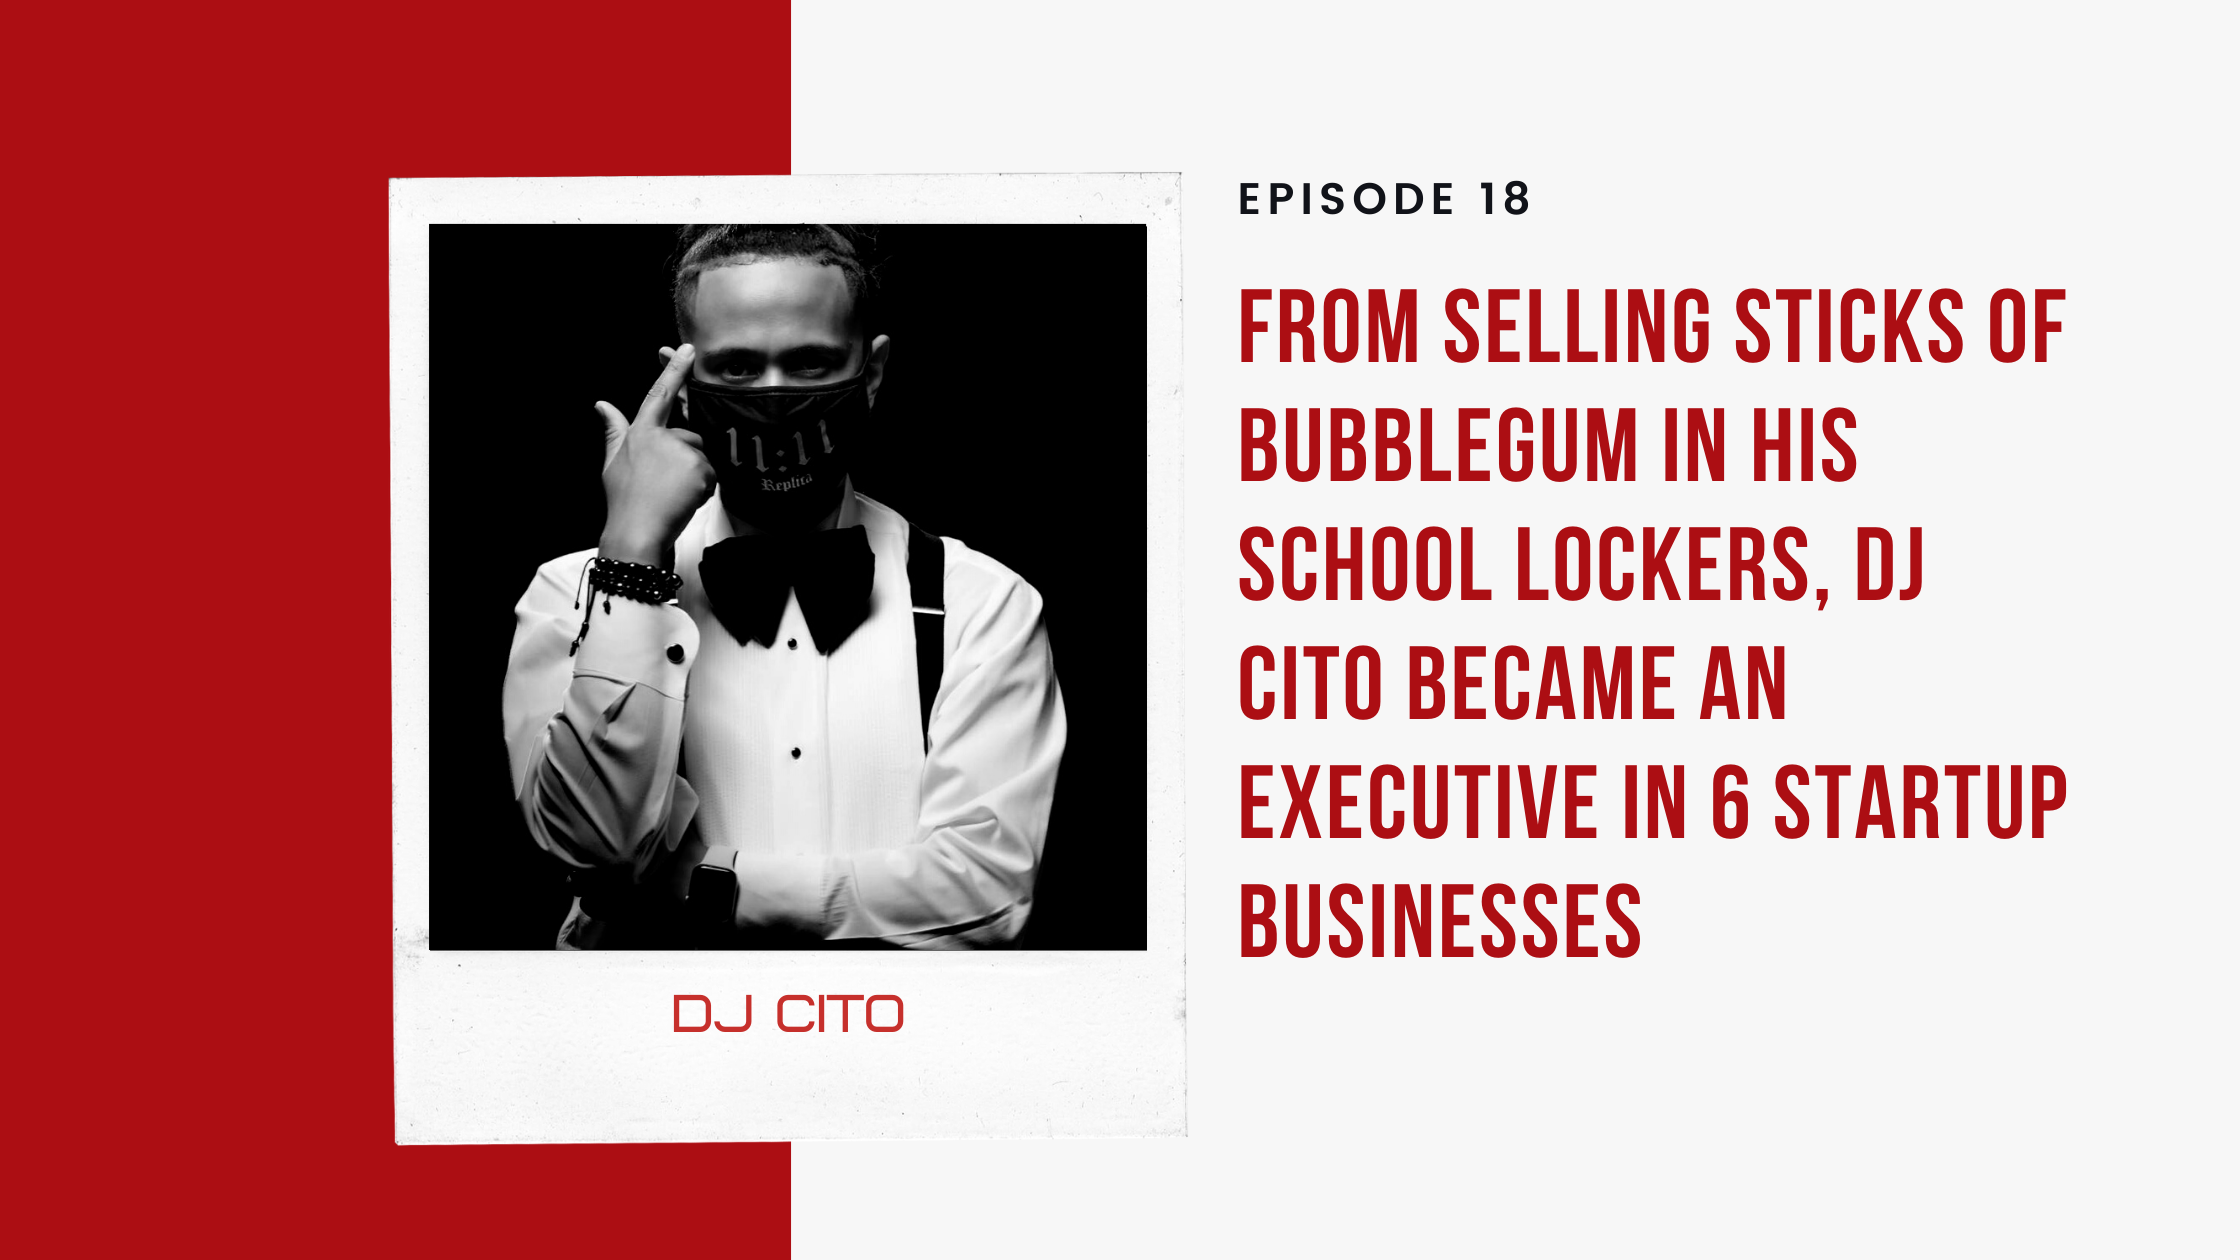 From Selling Sticks of Bubblegum in His School Lockers, DJ Cito Became an Executive in 6 Startup Businesses